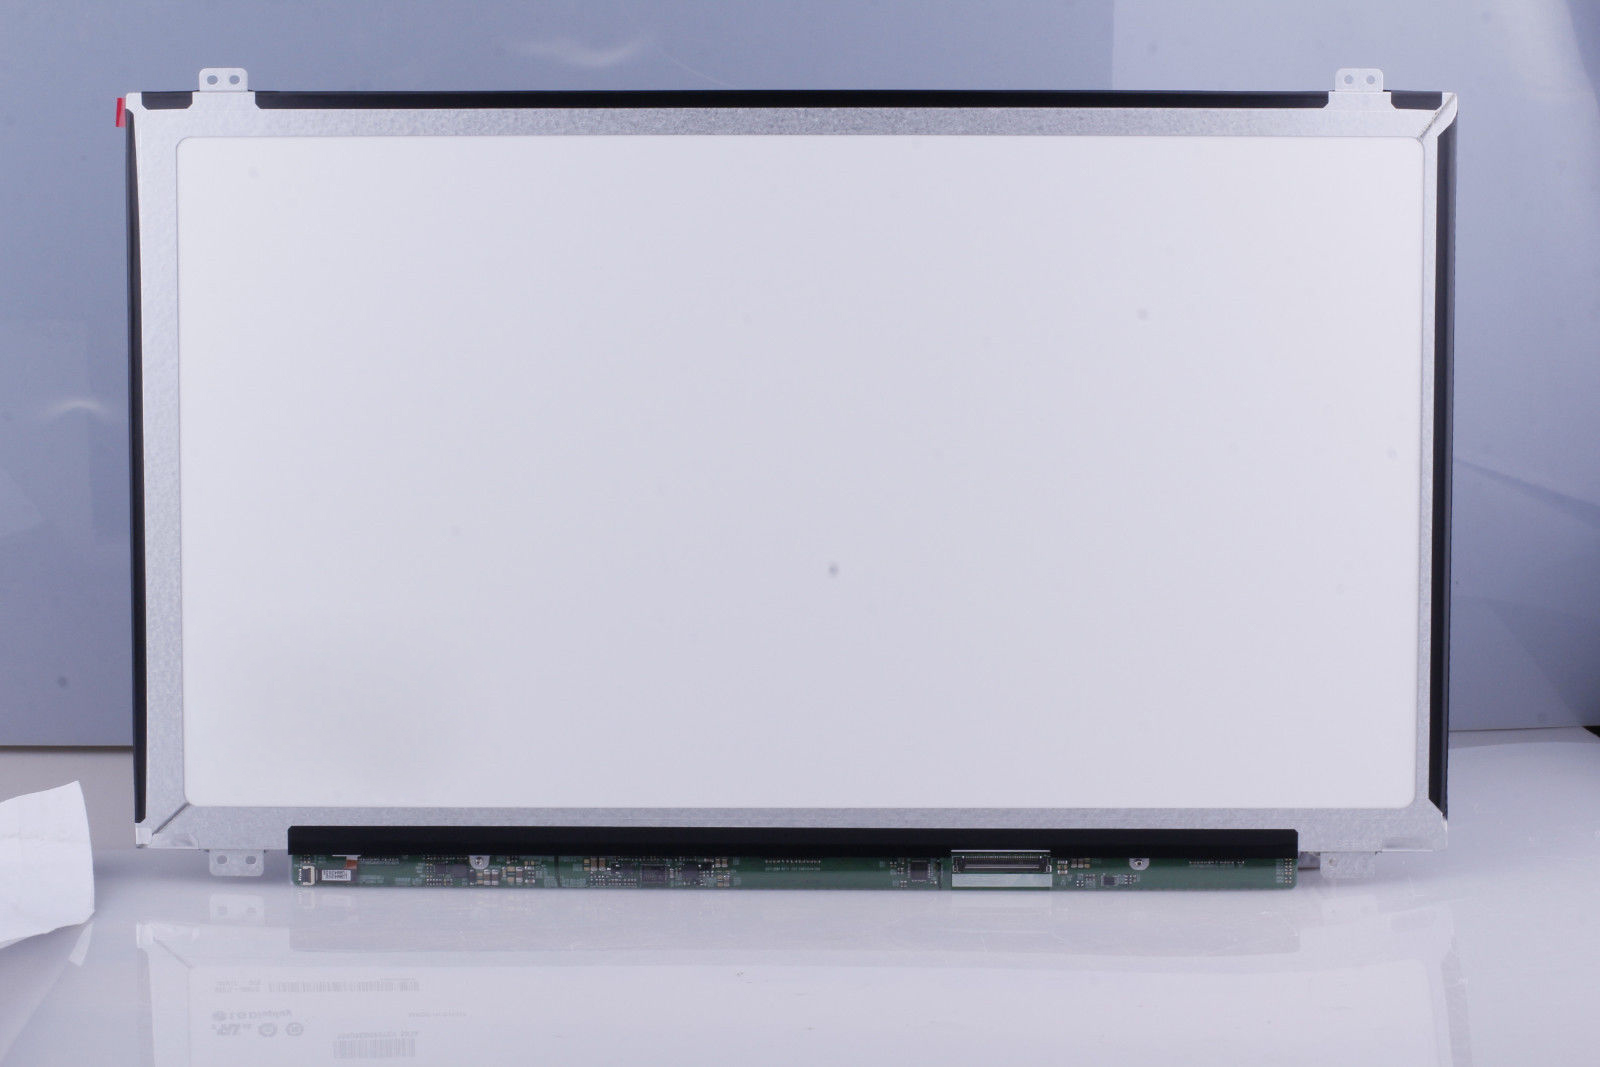 QuYing Laptop LCD Screen for HP Compaq ProBook 455 G2 J5P31UT (15.6 inch 1366x768 30Pin) ttlcd laptop lcd screen 15 6 inch for hp compaq hp pavilion dv6 2119tx perfect screen without dead piexls